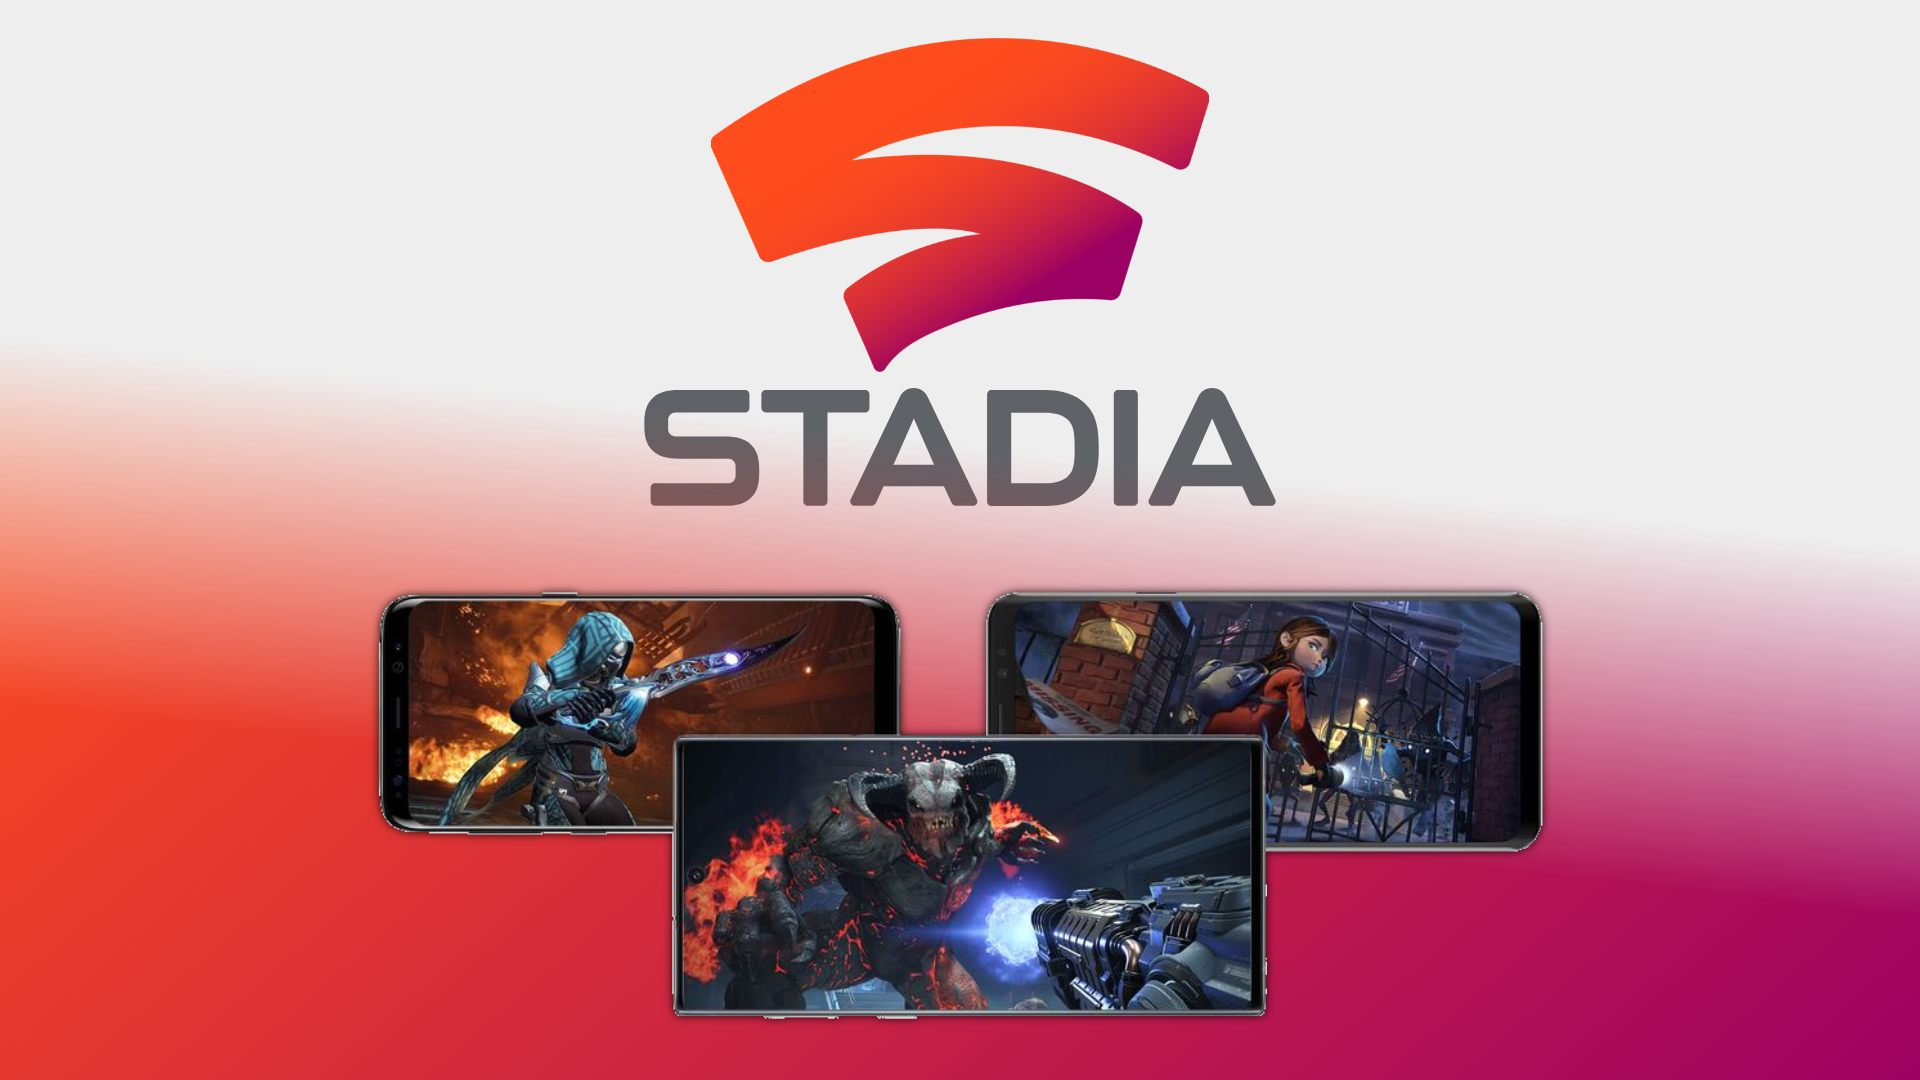 Stadia is now available on these non-Pixel phones